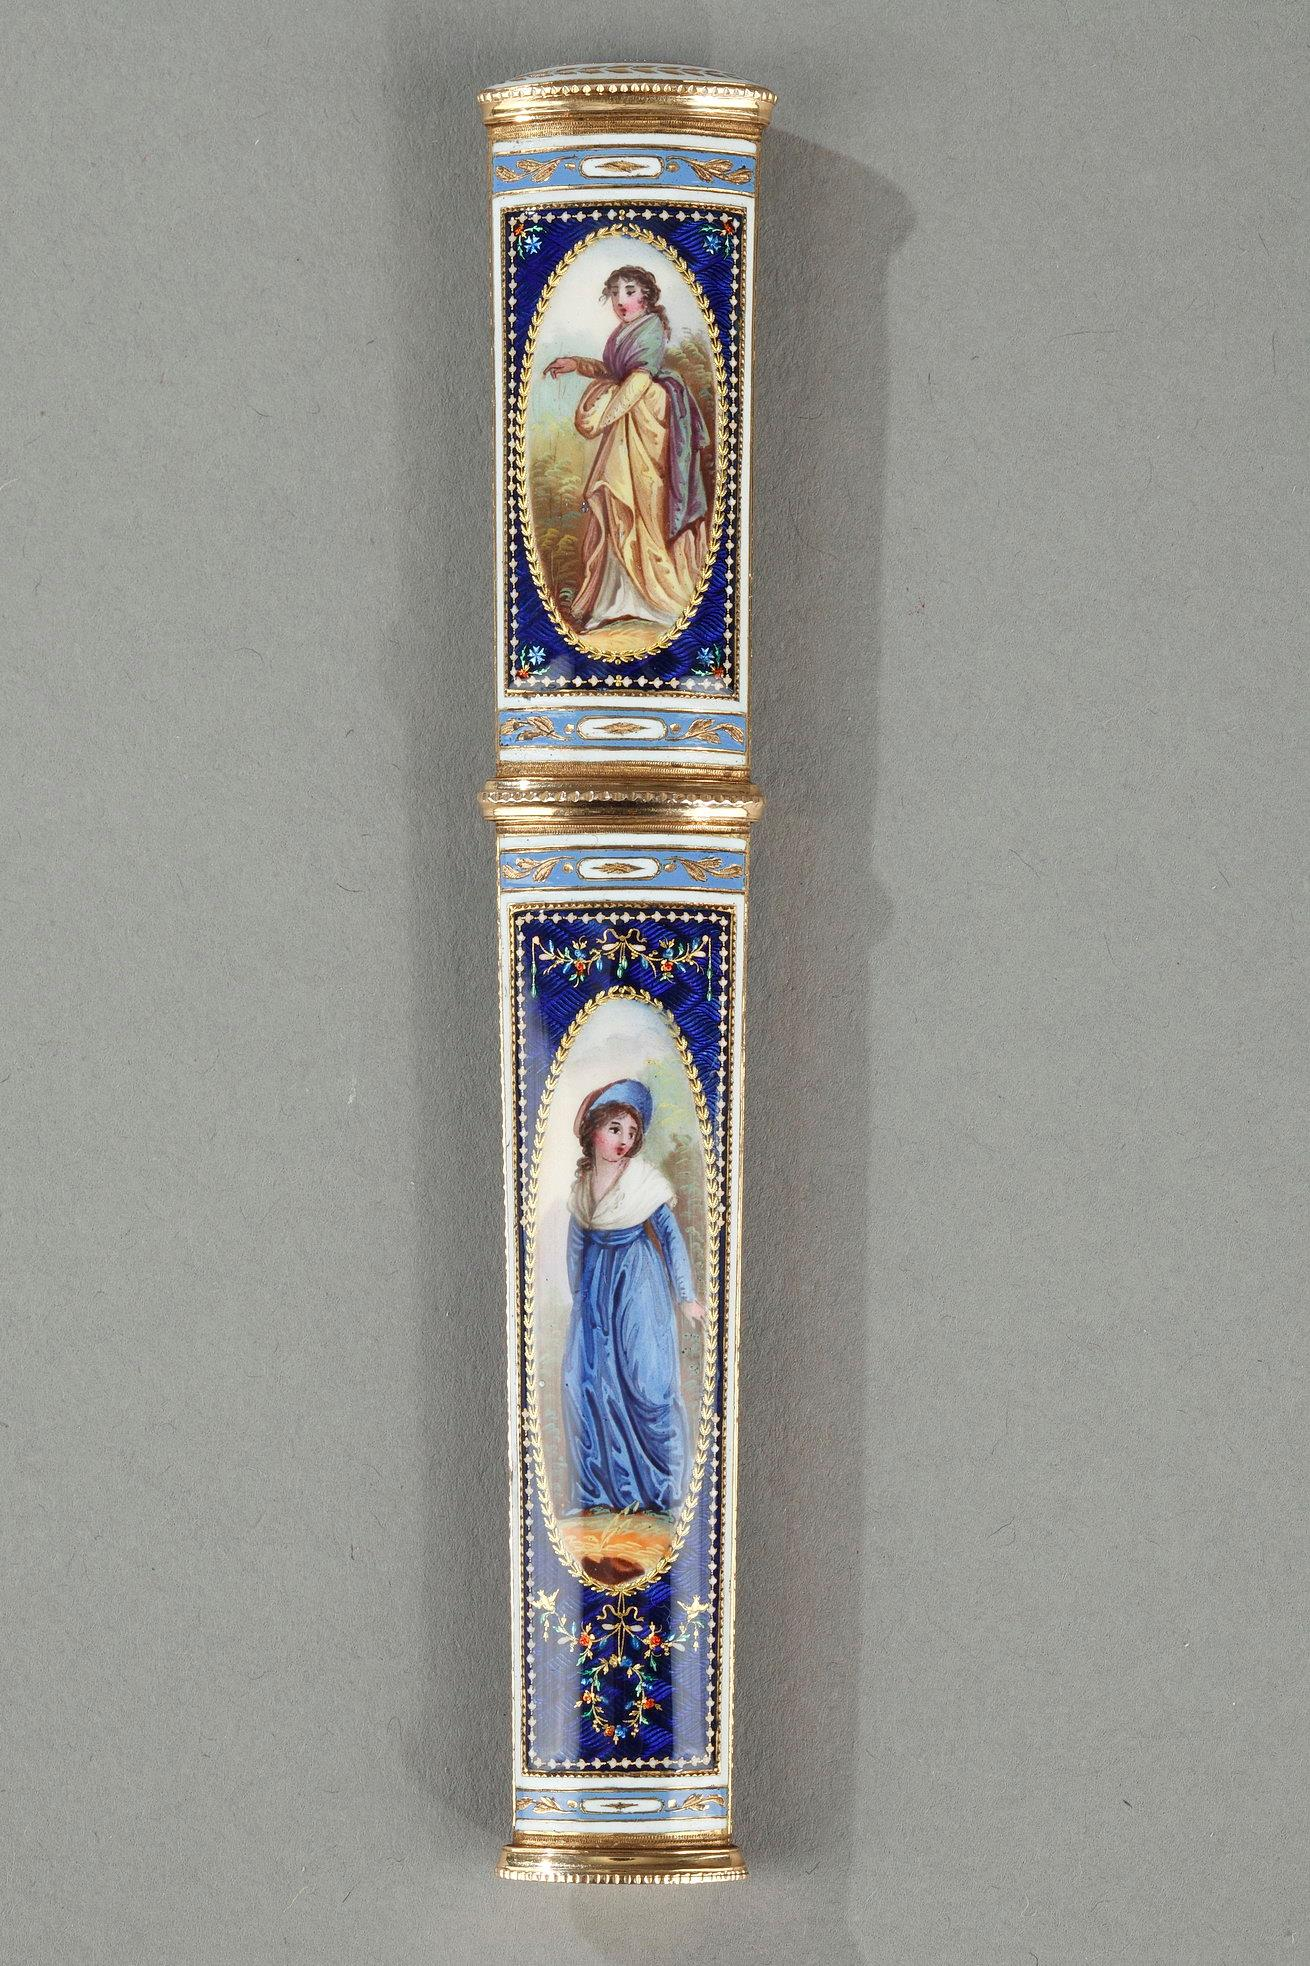 GOLD AND ENAMEL CASE. LATE 18TH CENTURY SWISS CRAFTSMANSHIP.